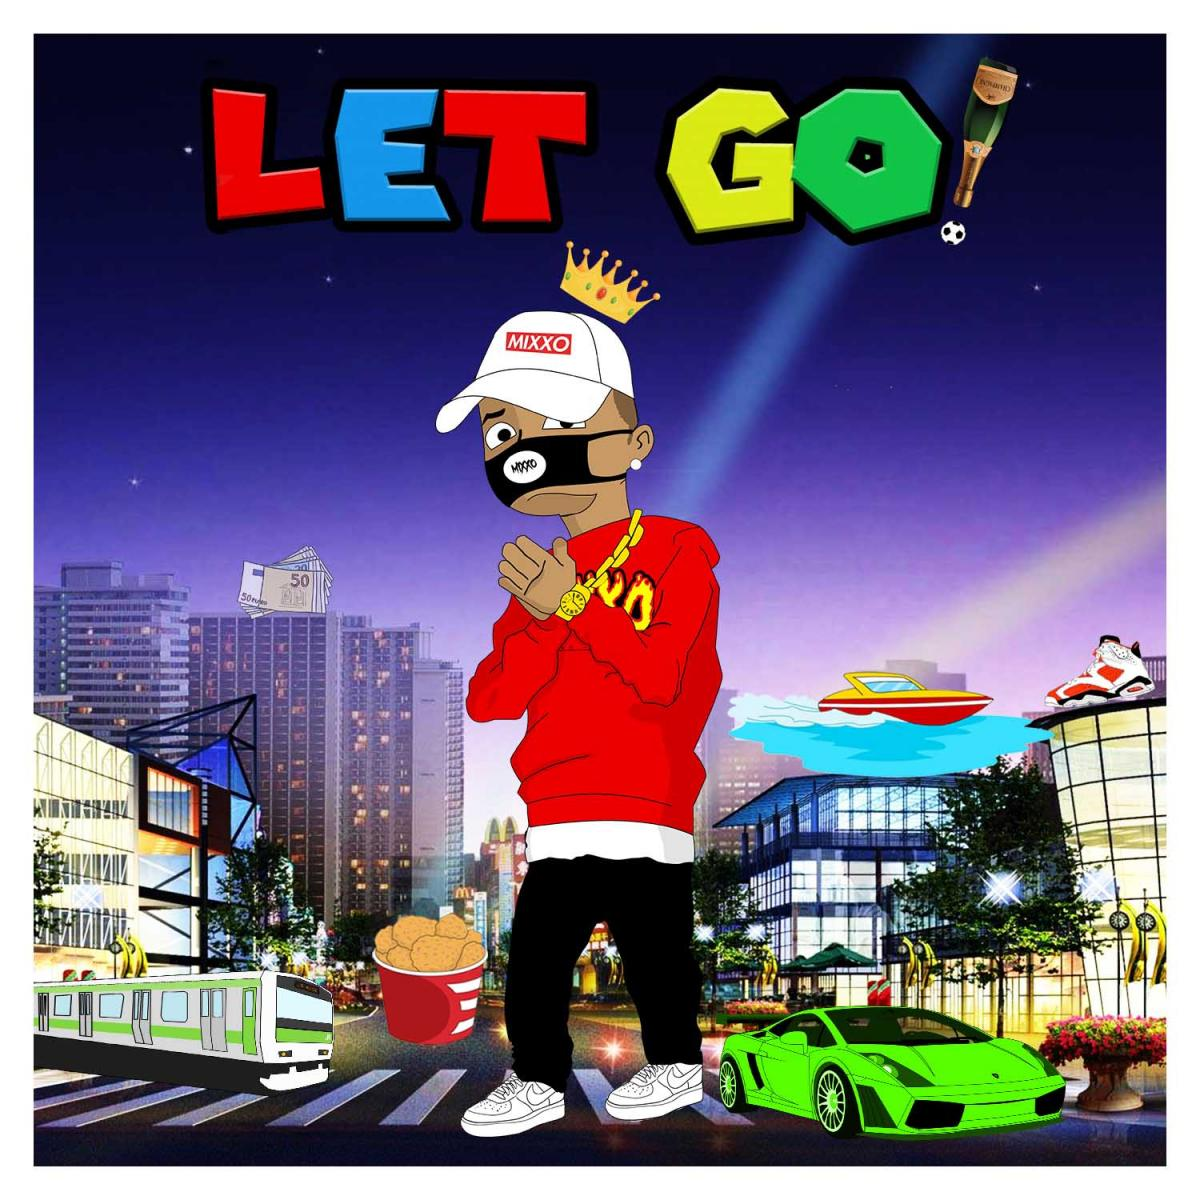 Upcoming: MIXXO - LET GO! (prod. By CashMoneyAp)